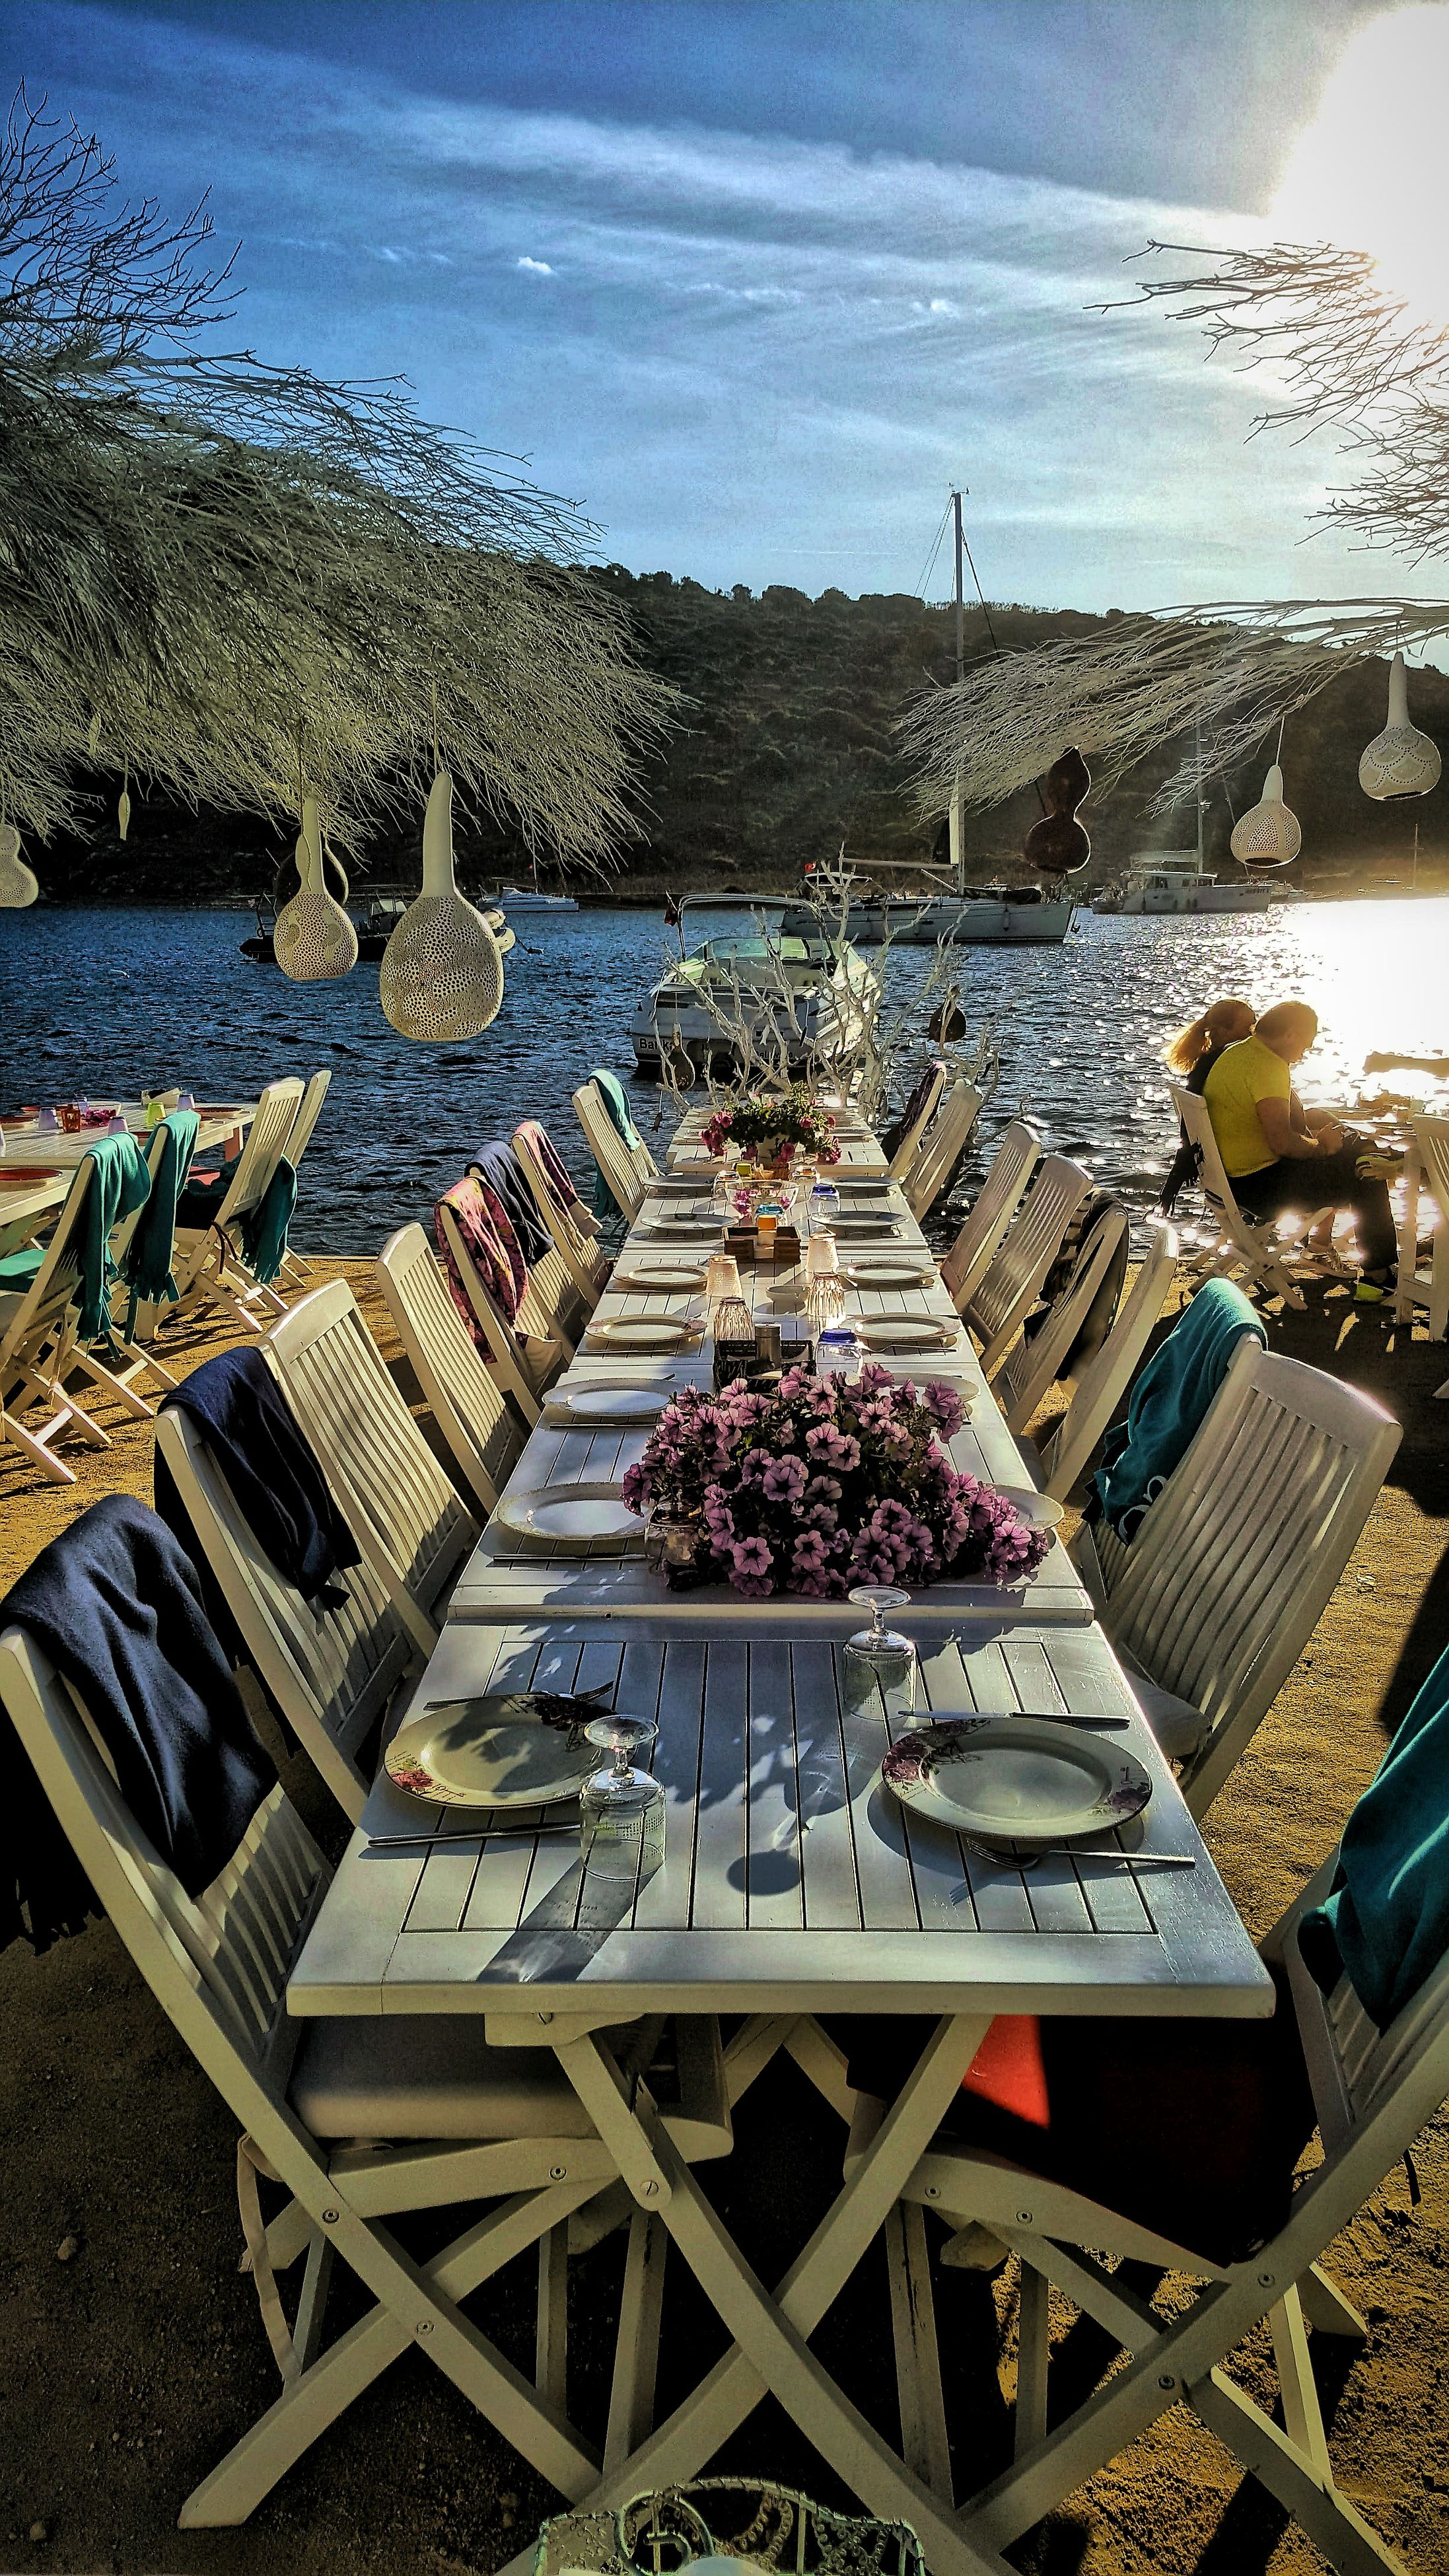 table, water, food and drink, food, plate, no people, sea, nature, sky, outdoors, horizon over water, chair, day, place setting, scenics, beauty in nature, ready-to-eat, healthy eating, freshness